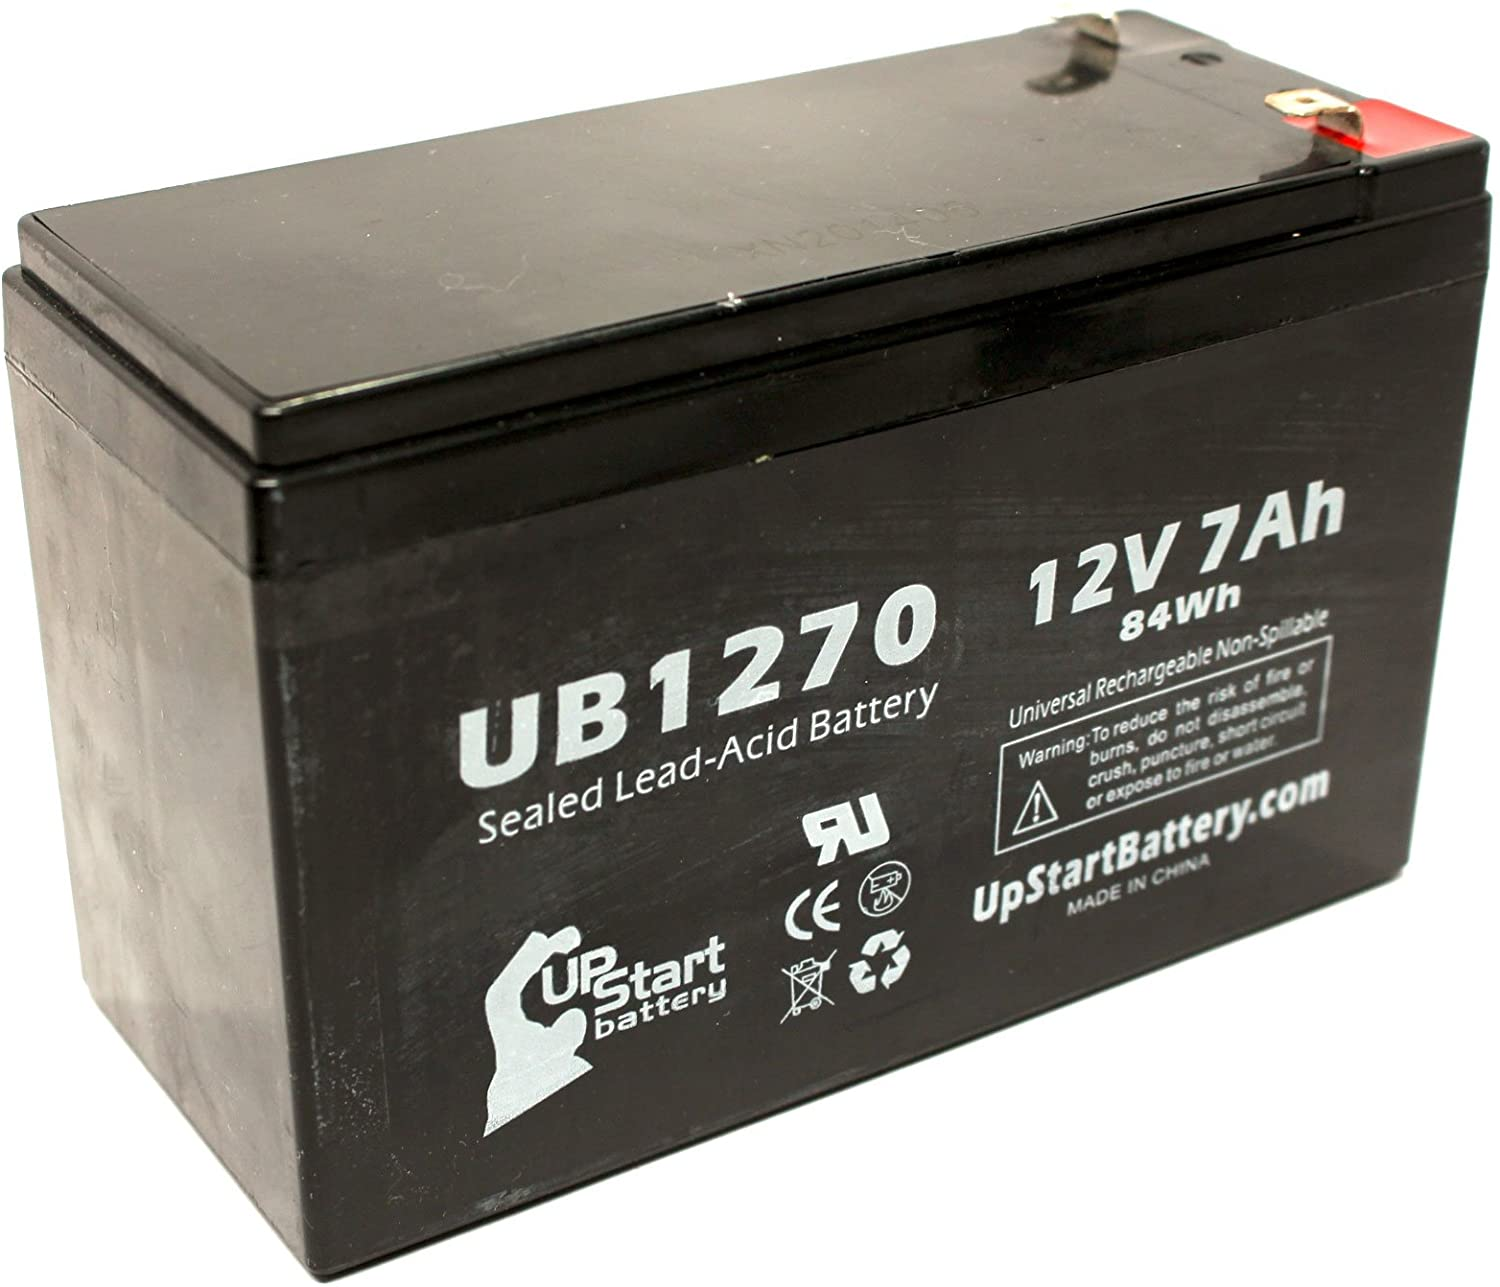 Replacement for Bruno Electra-Ride Elite Battery - Replacement UB1270 Universal Sealed Lead Acid Battery (12V, 7Ah, 7000mAh, F1 Terminal, AGM, SLA) - Includes Two F1 to F2 Terminal Adapters